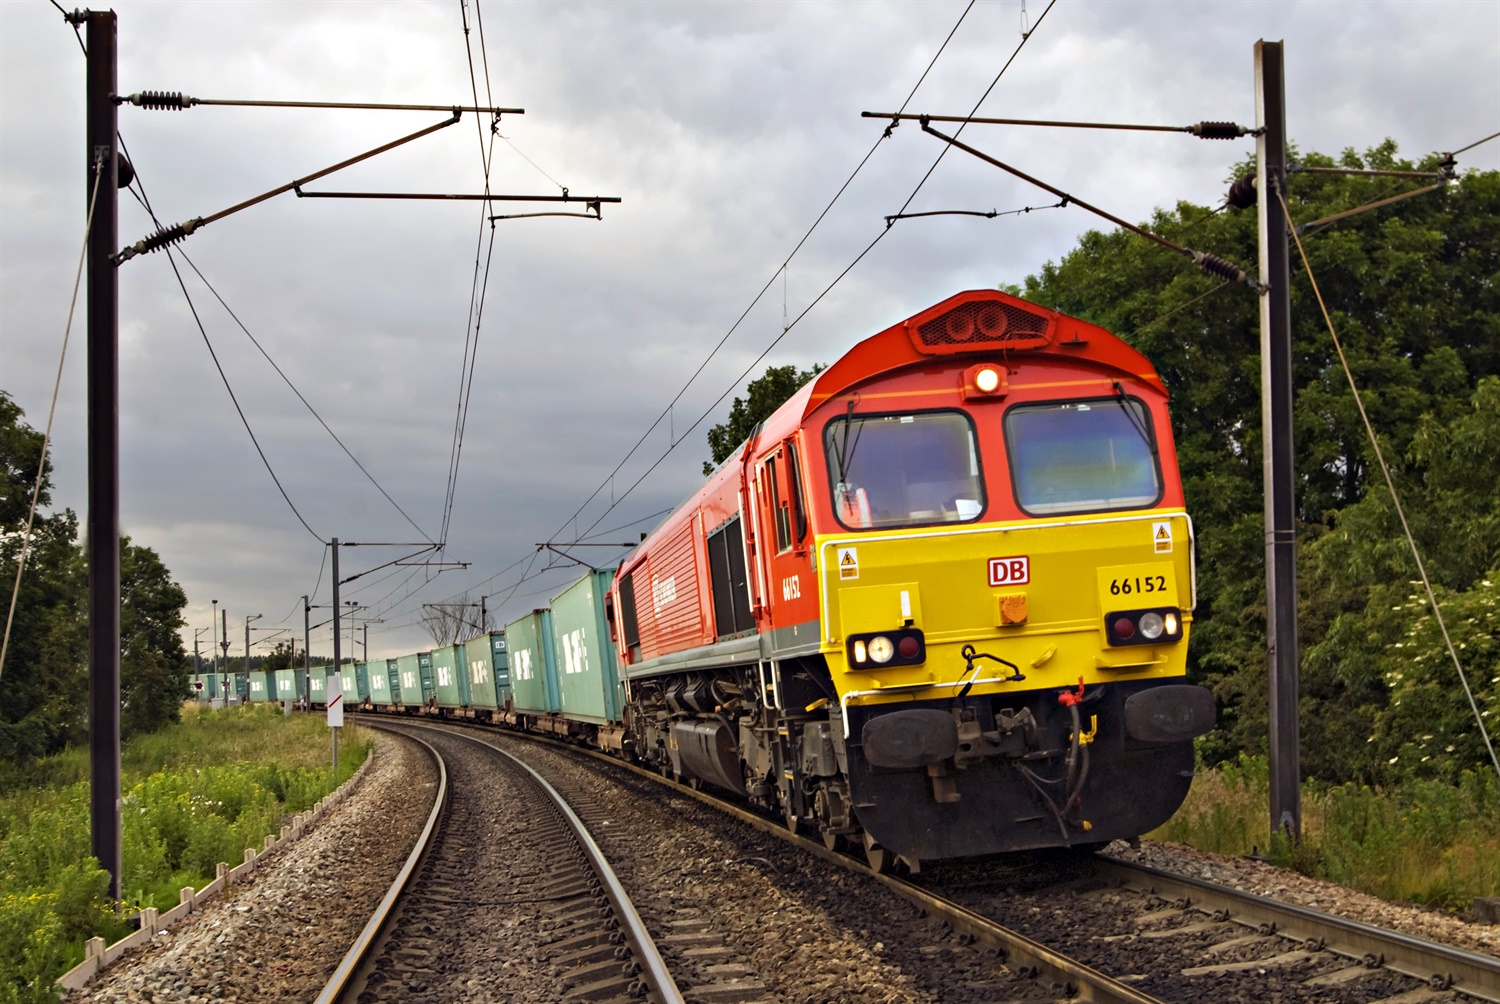 370,000 tonnes of vital supplies moved across the railway last week